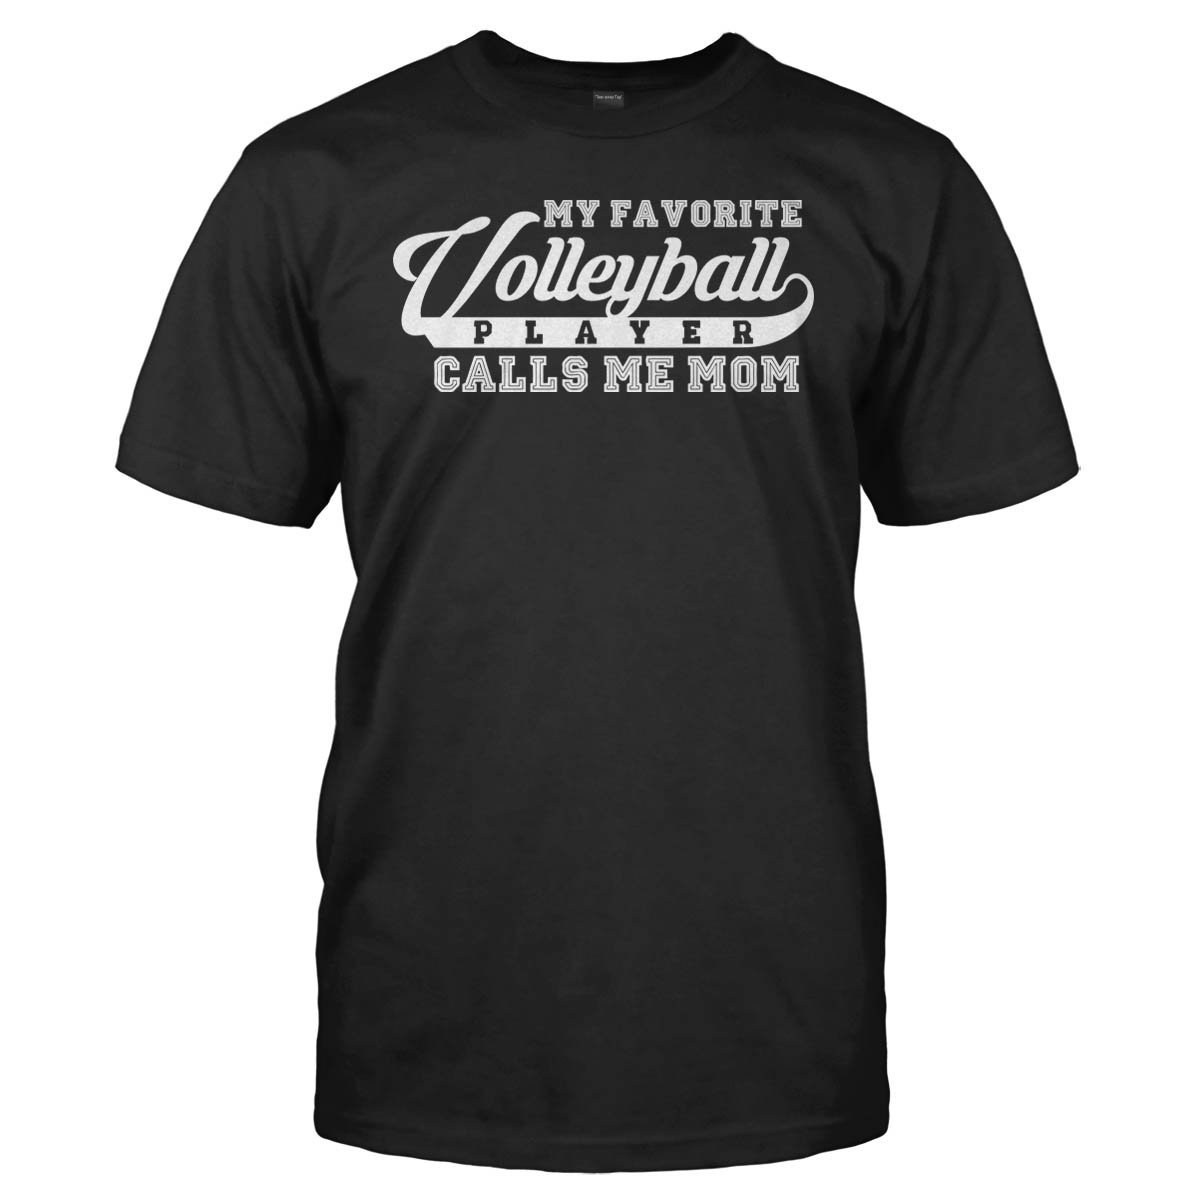 My Favorite Volleyball Player Calls Me Mom - T Shirt